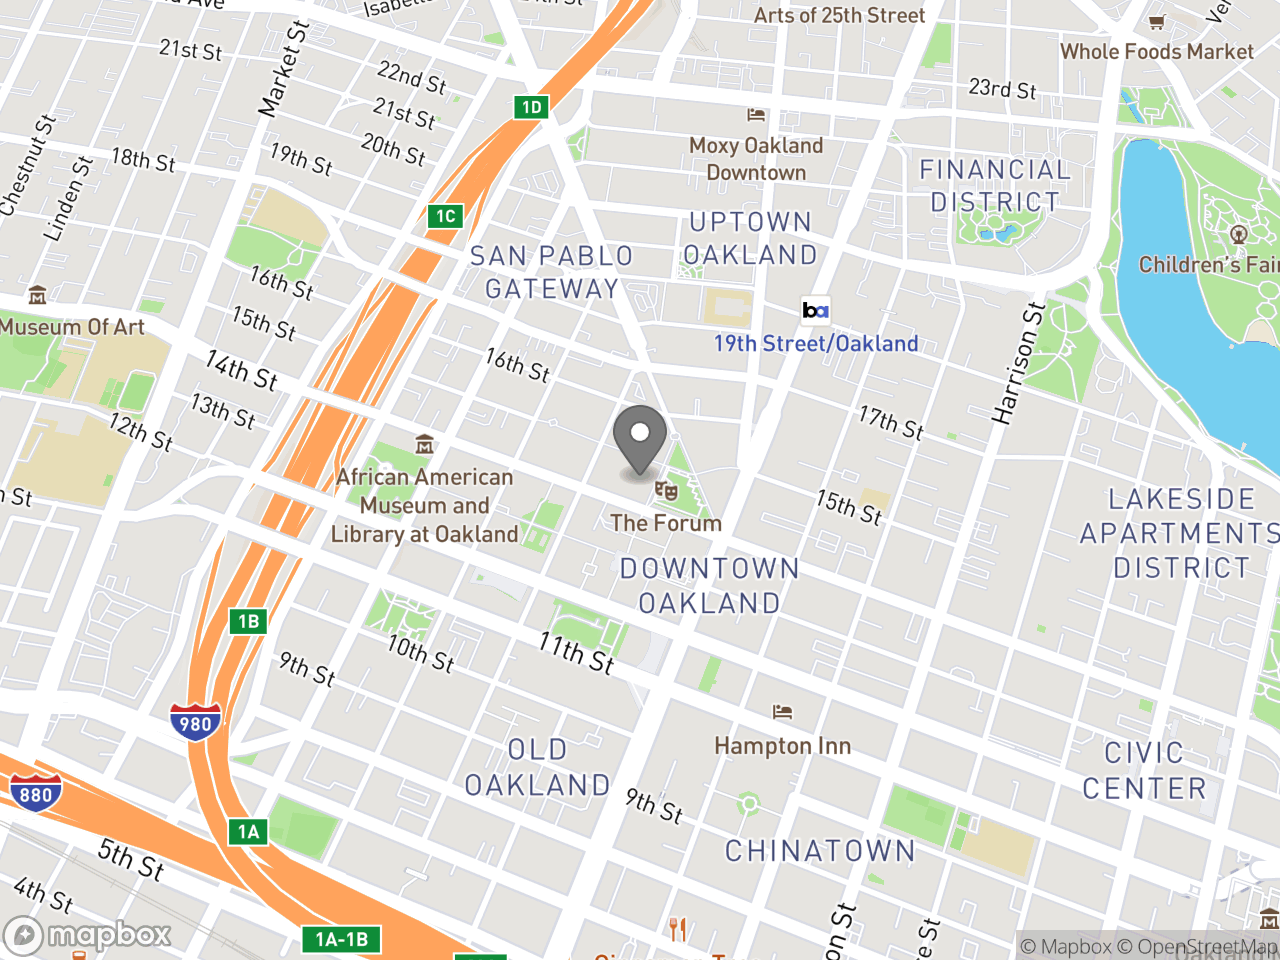 Map image for Rent Board Panel Meeting May 16, 2019, located at 1 Frank H Ogawa Plaza in Oakland, CA 94612